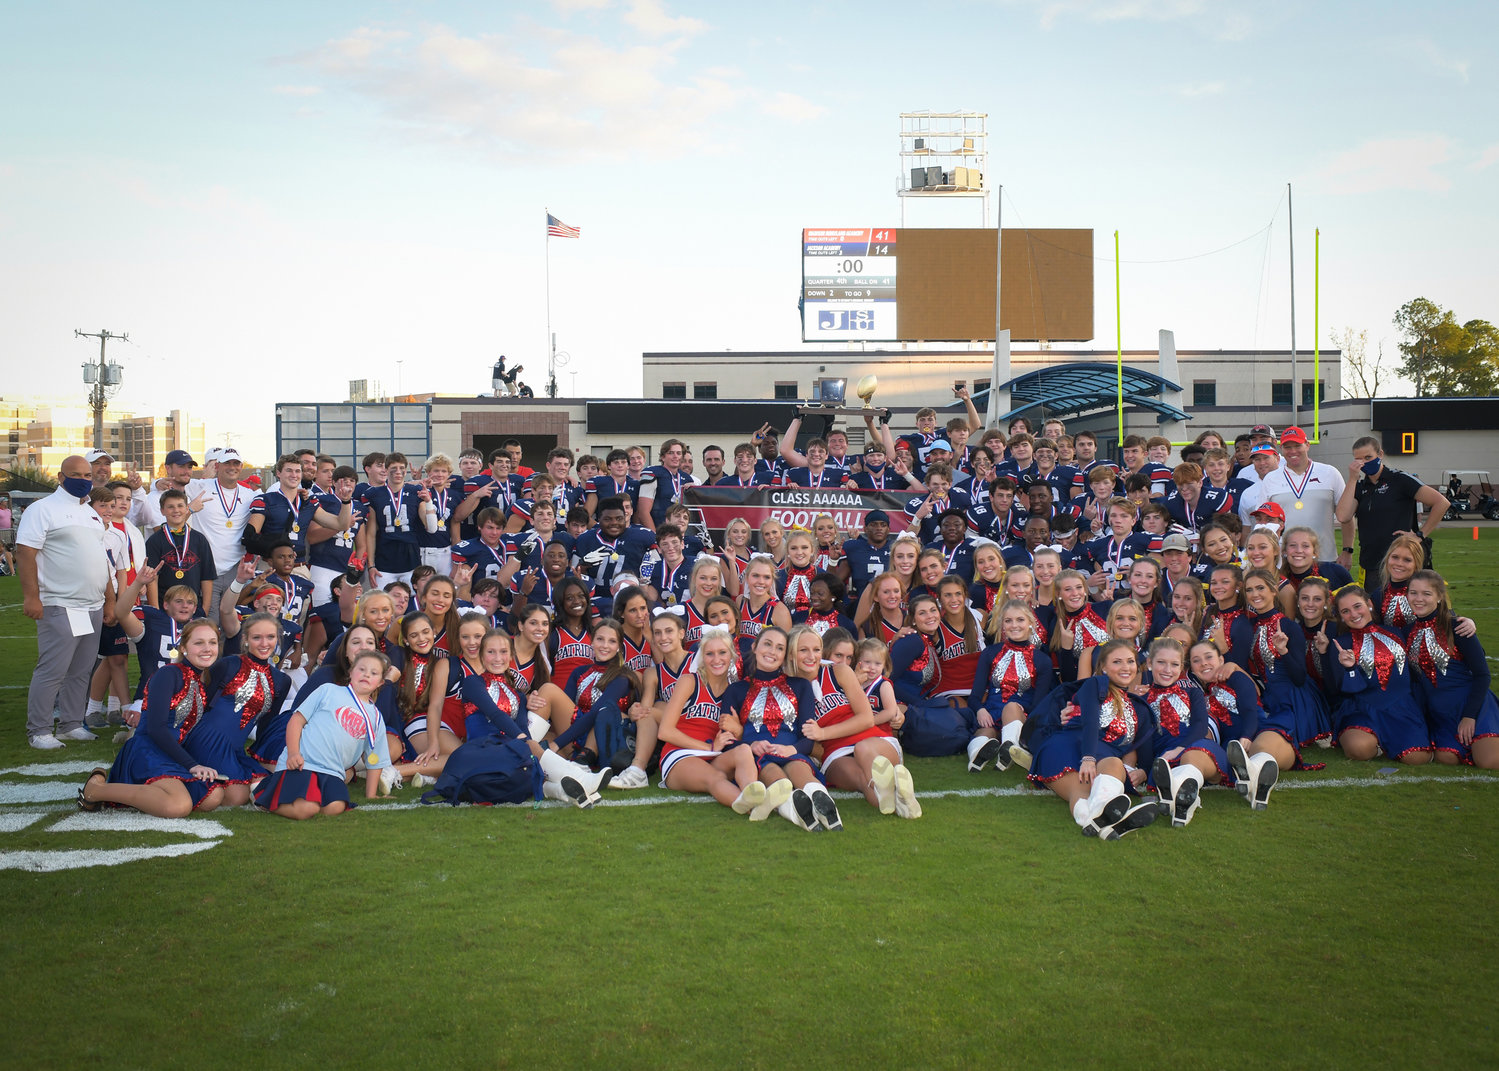 Madison-Ridgeland Academy celebrated their second consecutive MAIS Class 6A State Championship with a 41-14 victory over Jackson Academy last week.